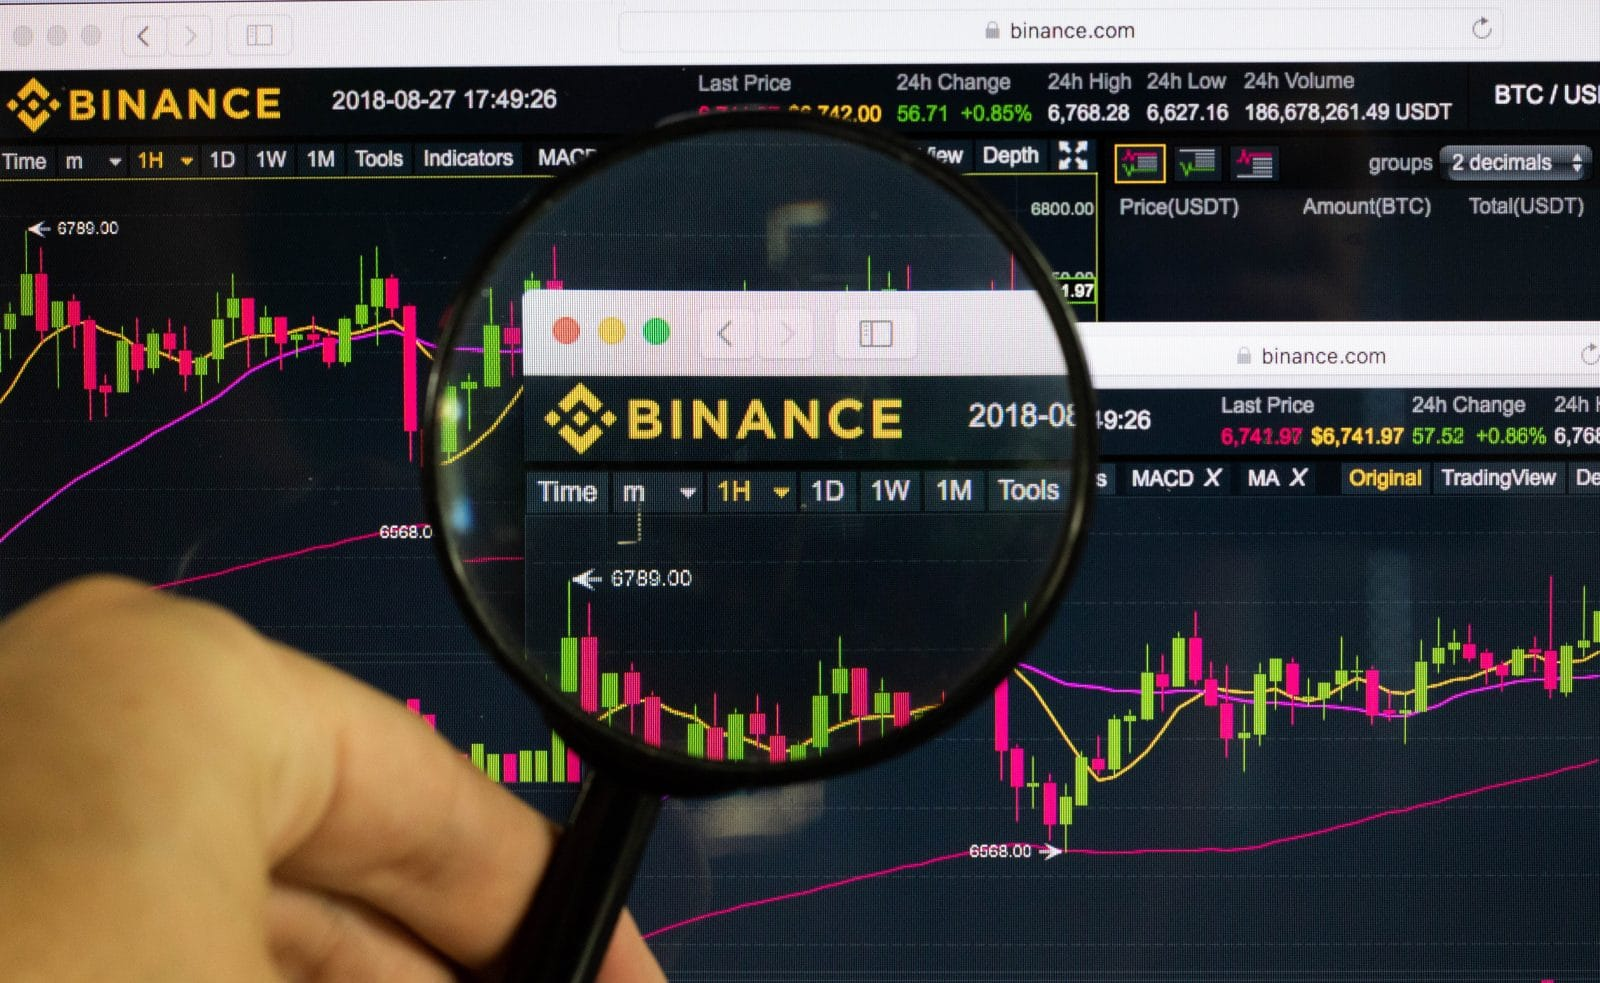 Most Binance Employees Take Crypto as Pay, Why They Bullish On BNB?